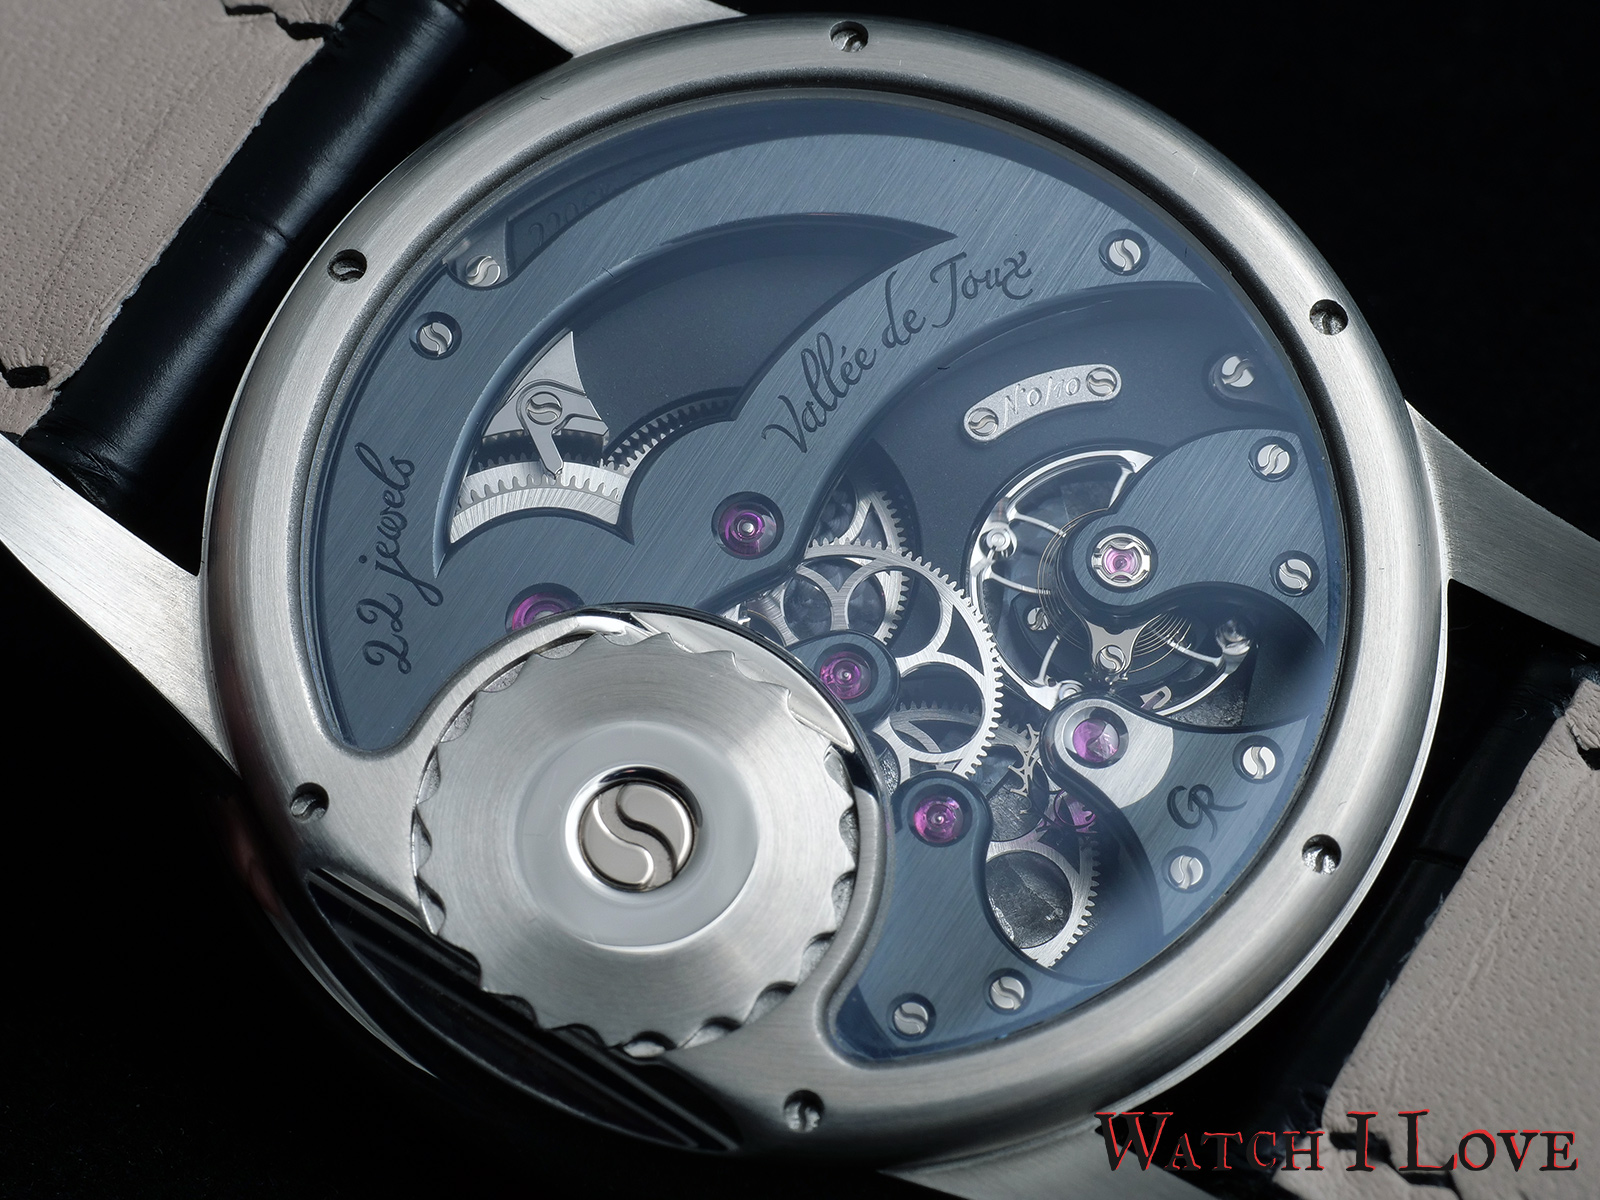 Romain Gauthier Prestige HMS Stainless Steel back Calibre 2206 HMS